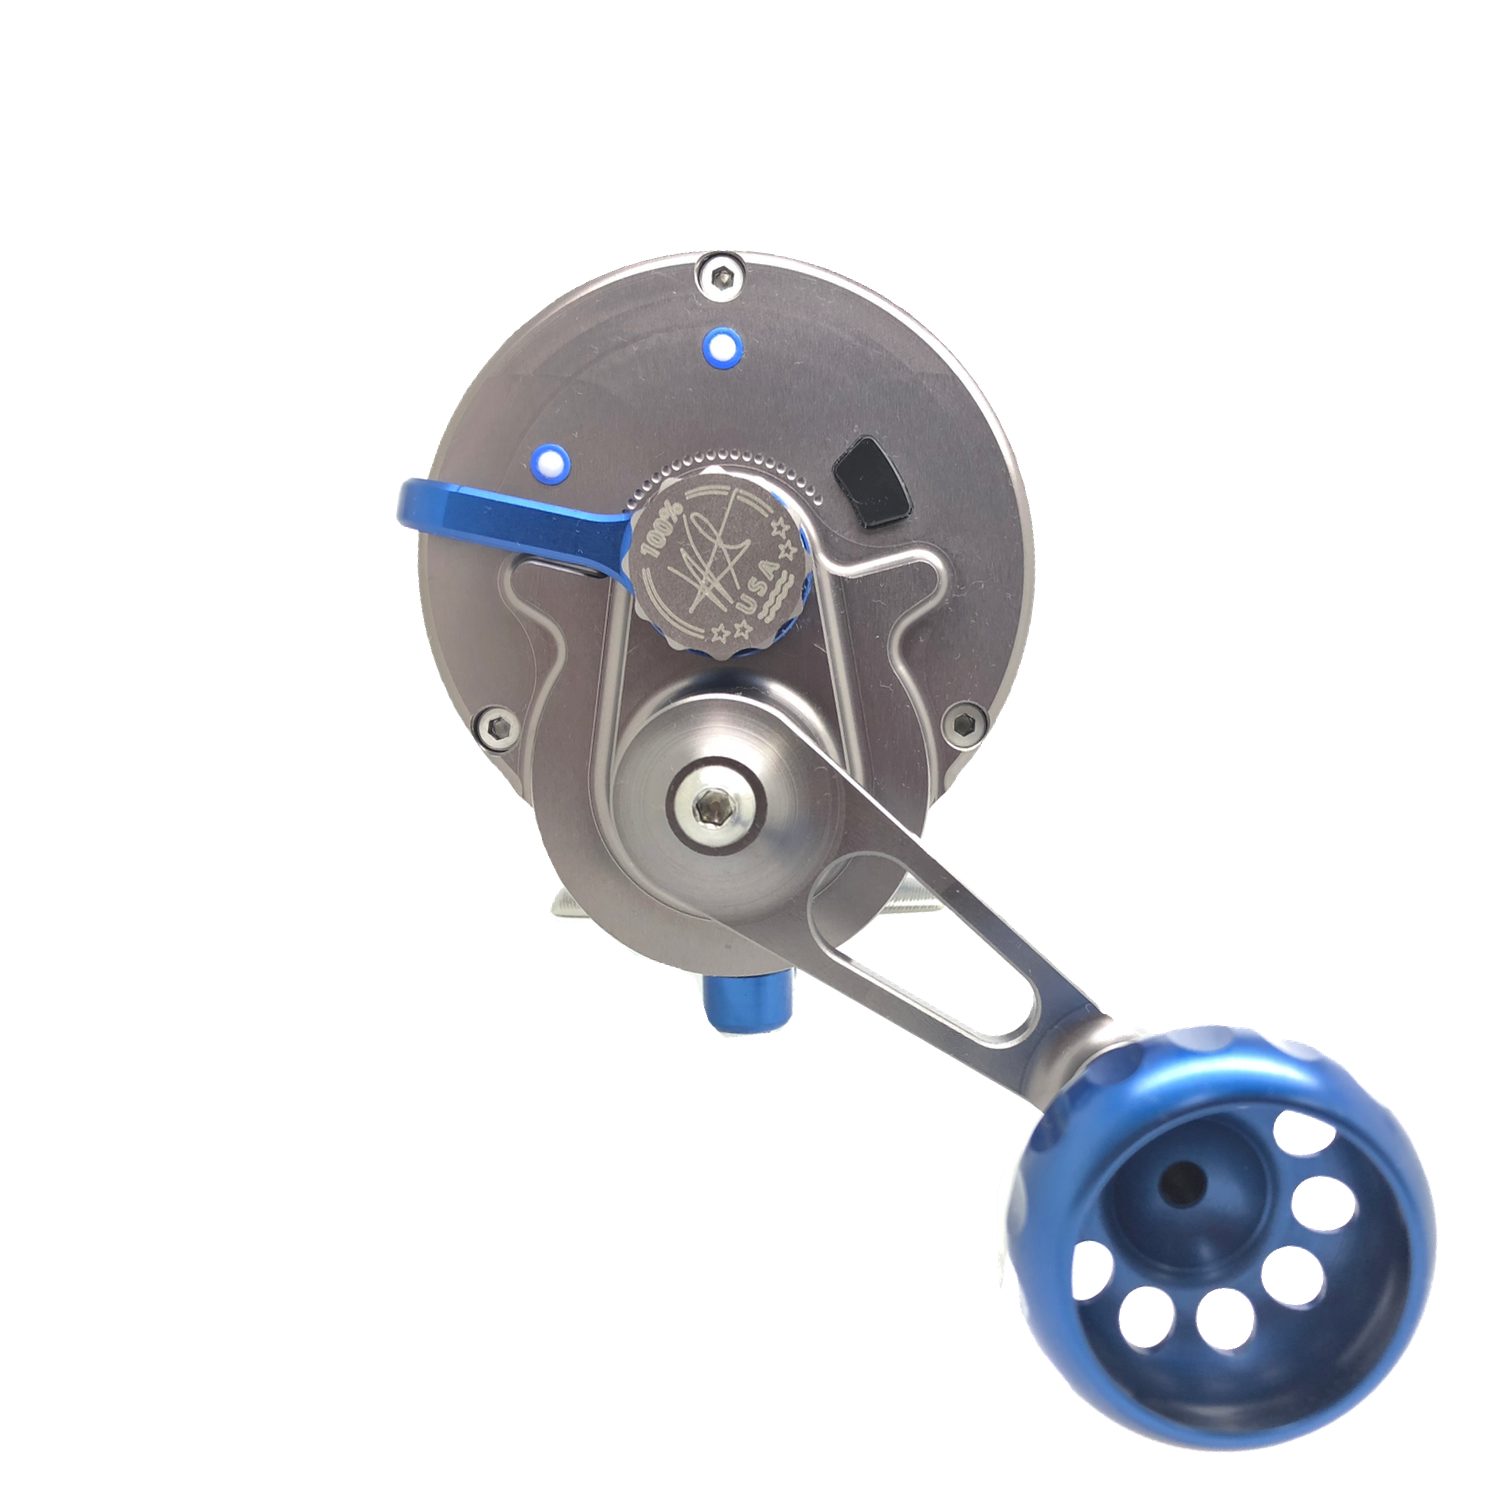 SEiGLER OS conventional fishing reel, Made in Virginia, Virginia beach manufacturer,  Lever drag fishing reel,  Machined Aluminum,